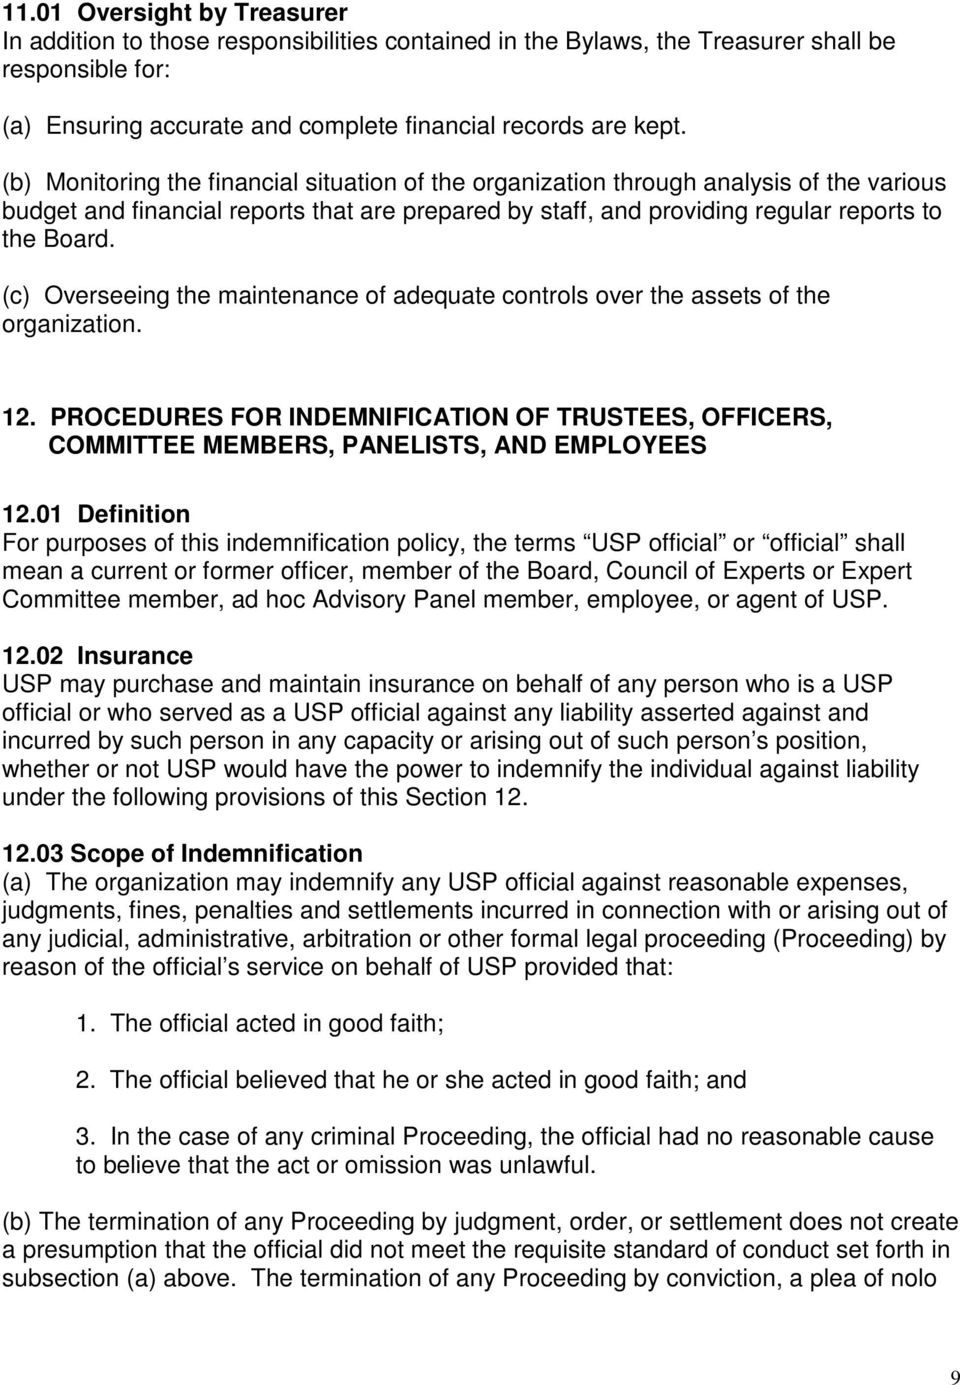 (c) Overseeing the maintenance of adequate controls over the assets of the organization. 12. PROCEDURES FOR INDEMNIFICATION OF TRUSTEES, OFFICERS, COMMITTEE MEMBERS, PANELISTS, AND EMPLOYEES 12.